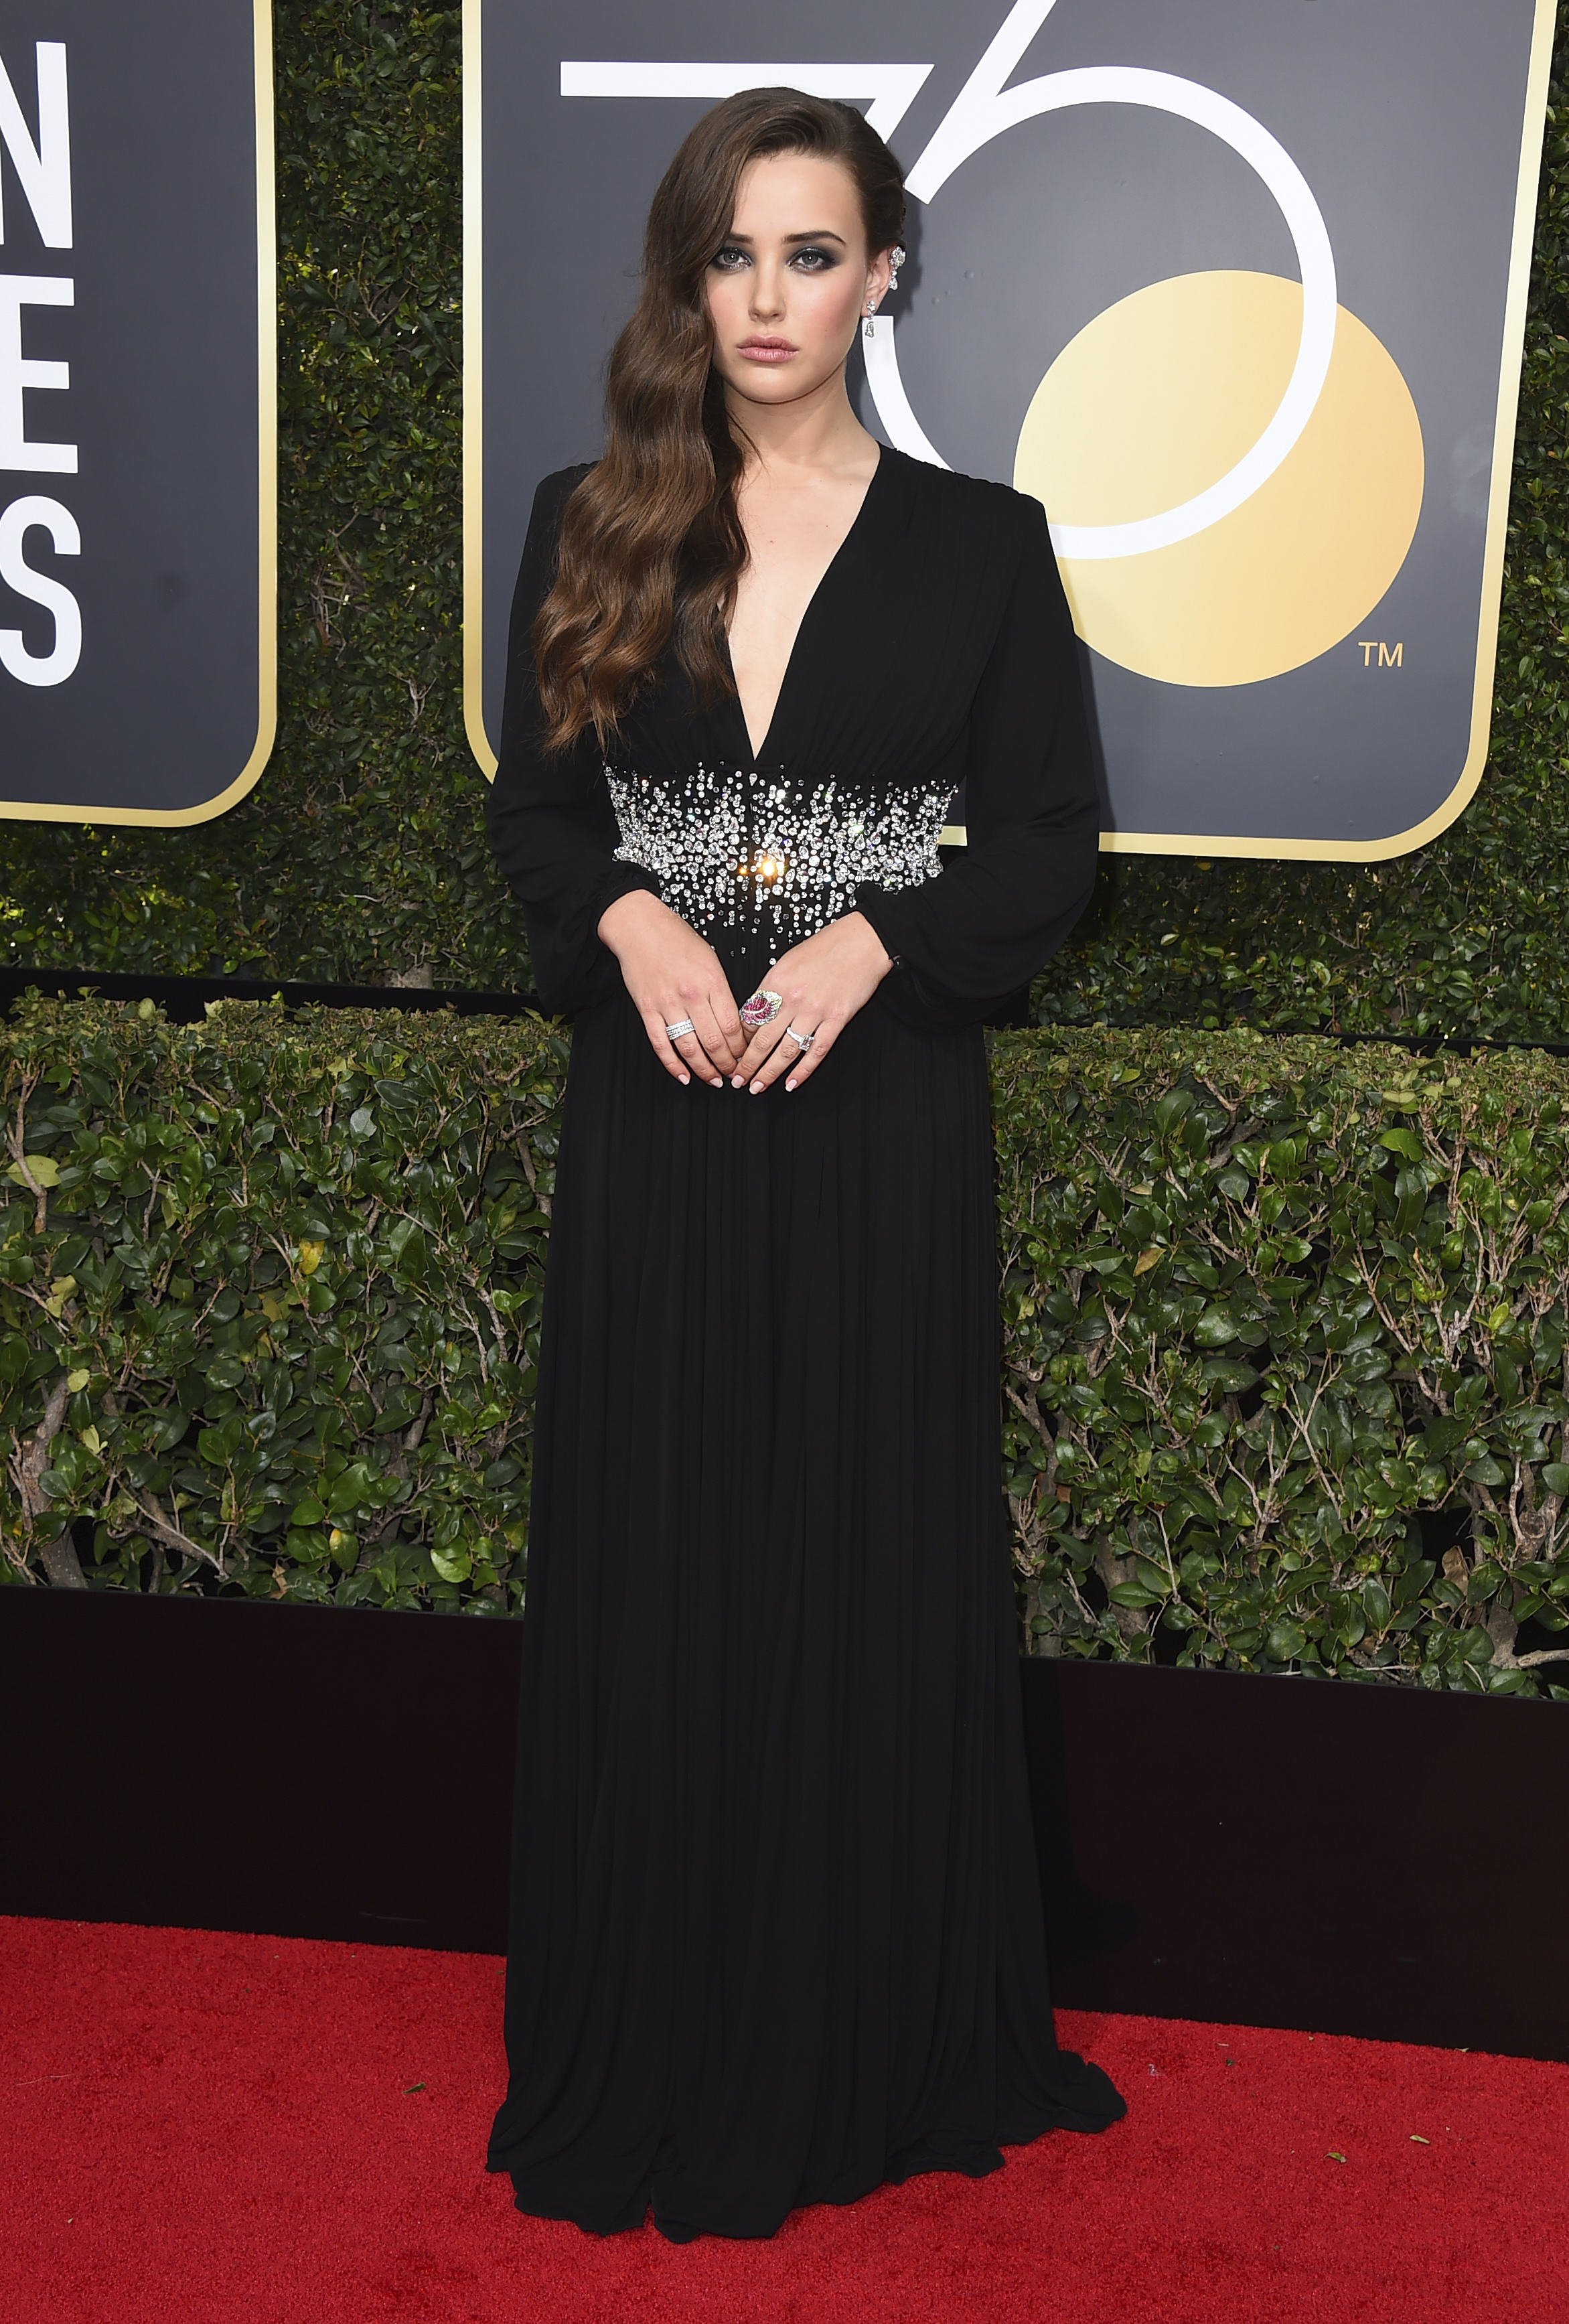 <div class='meta'><div class='origin-logo' data-origin='AP'></div><span class='caption-text' data-credit='Jordan Strauss/Invision/AP'>Katherine Langford arrives at the 75th annual Golden Globe Awards at the Beverly Hilton Hotel on Sunday, Jan. 7, 2018, in Beverly Hills, Calif.</span></div>